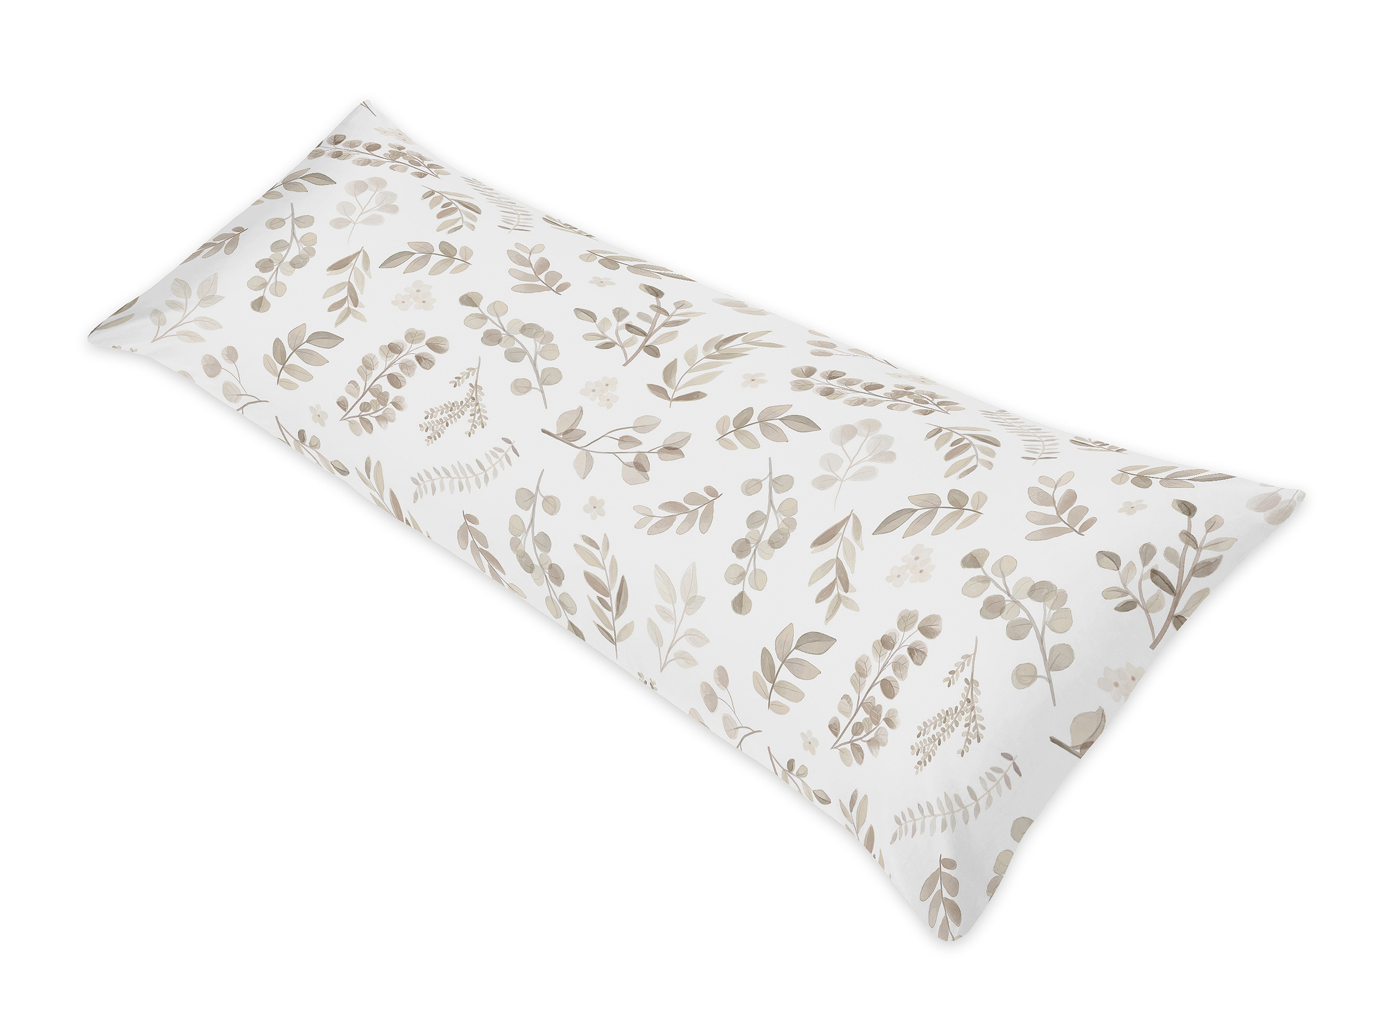 Sweet Jojo Designs Floral Leaf Boy Girl Long Front Crib Rail Guard Baby Teething Cover Protector Wrap Ivory Cream Beige Taupe White Gender Neutral Boho Watercolor Botanical Flower Woodland Tropical